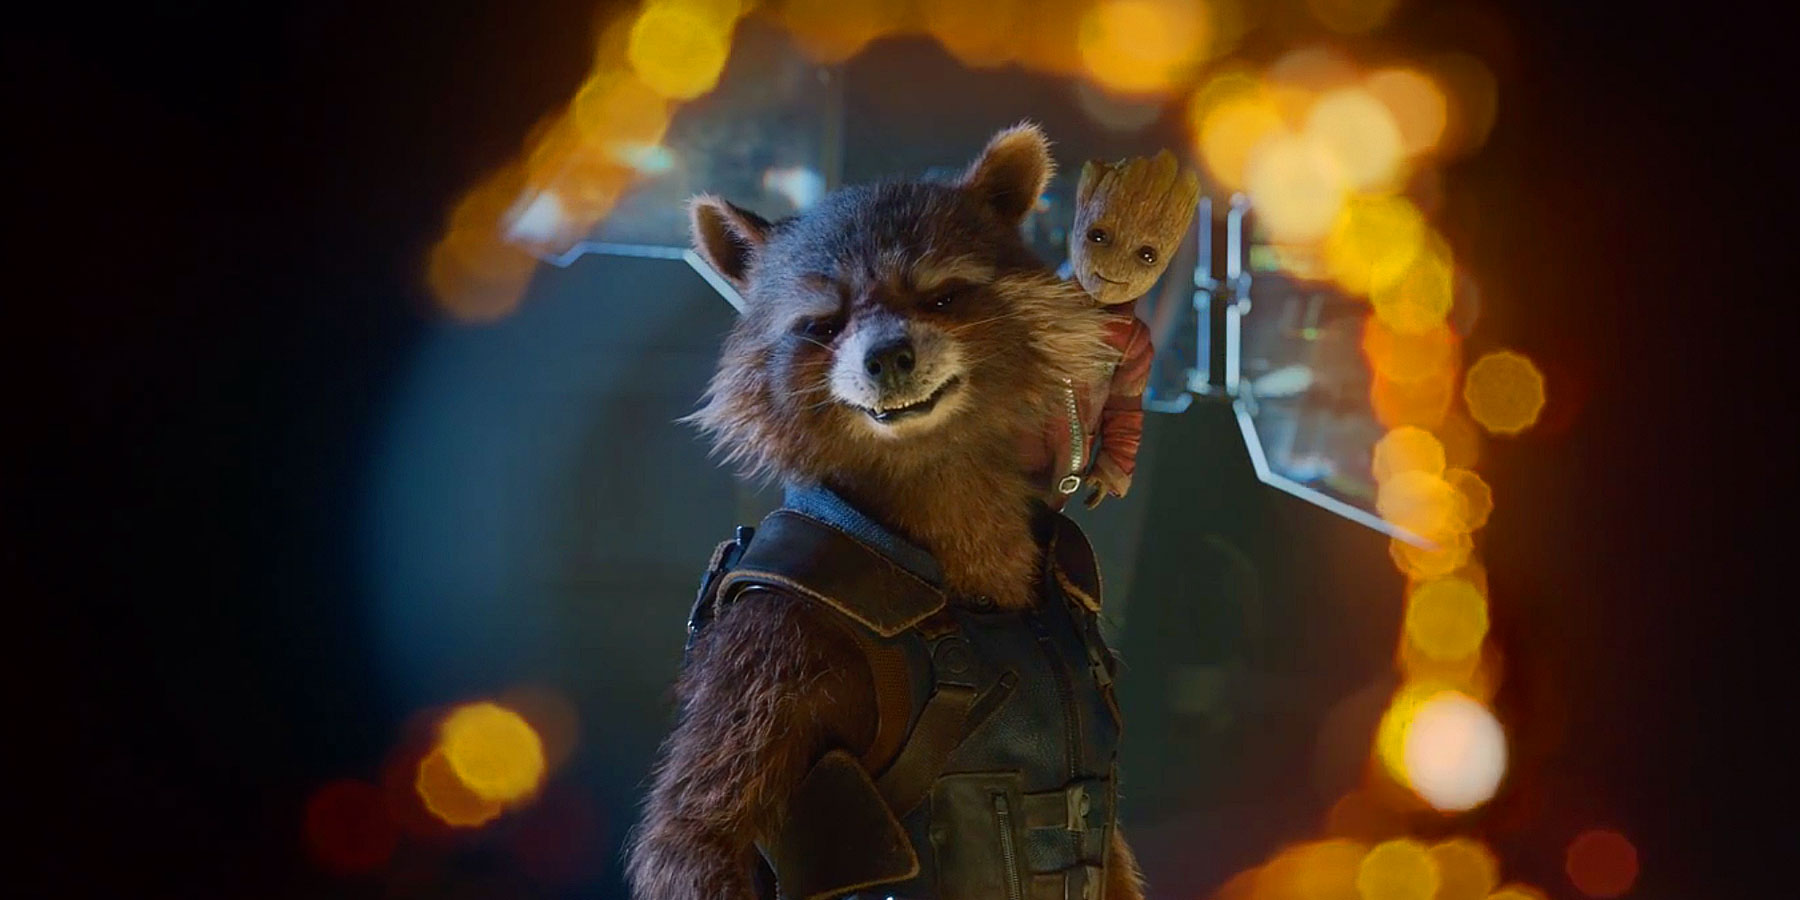 groot and rocket relationship